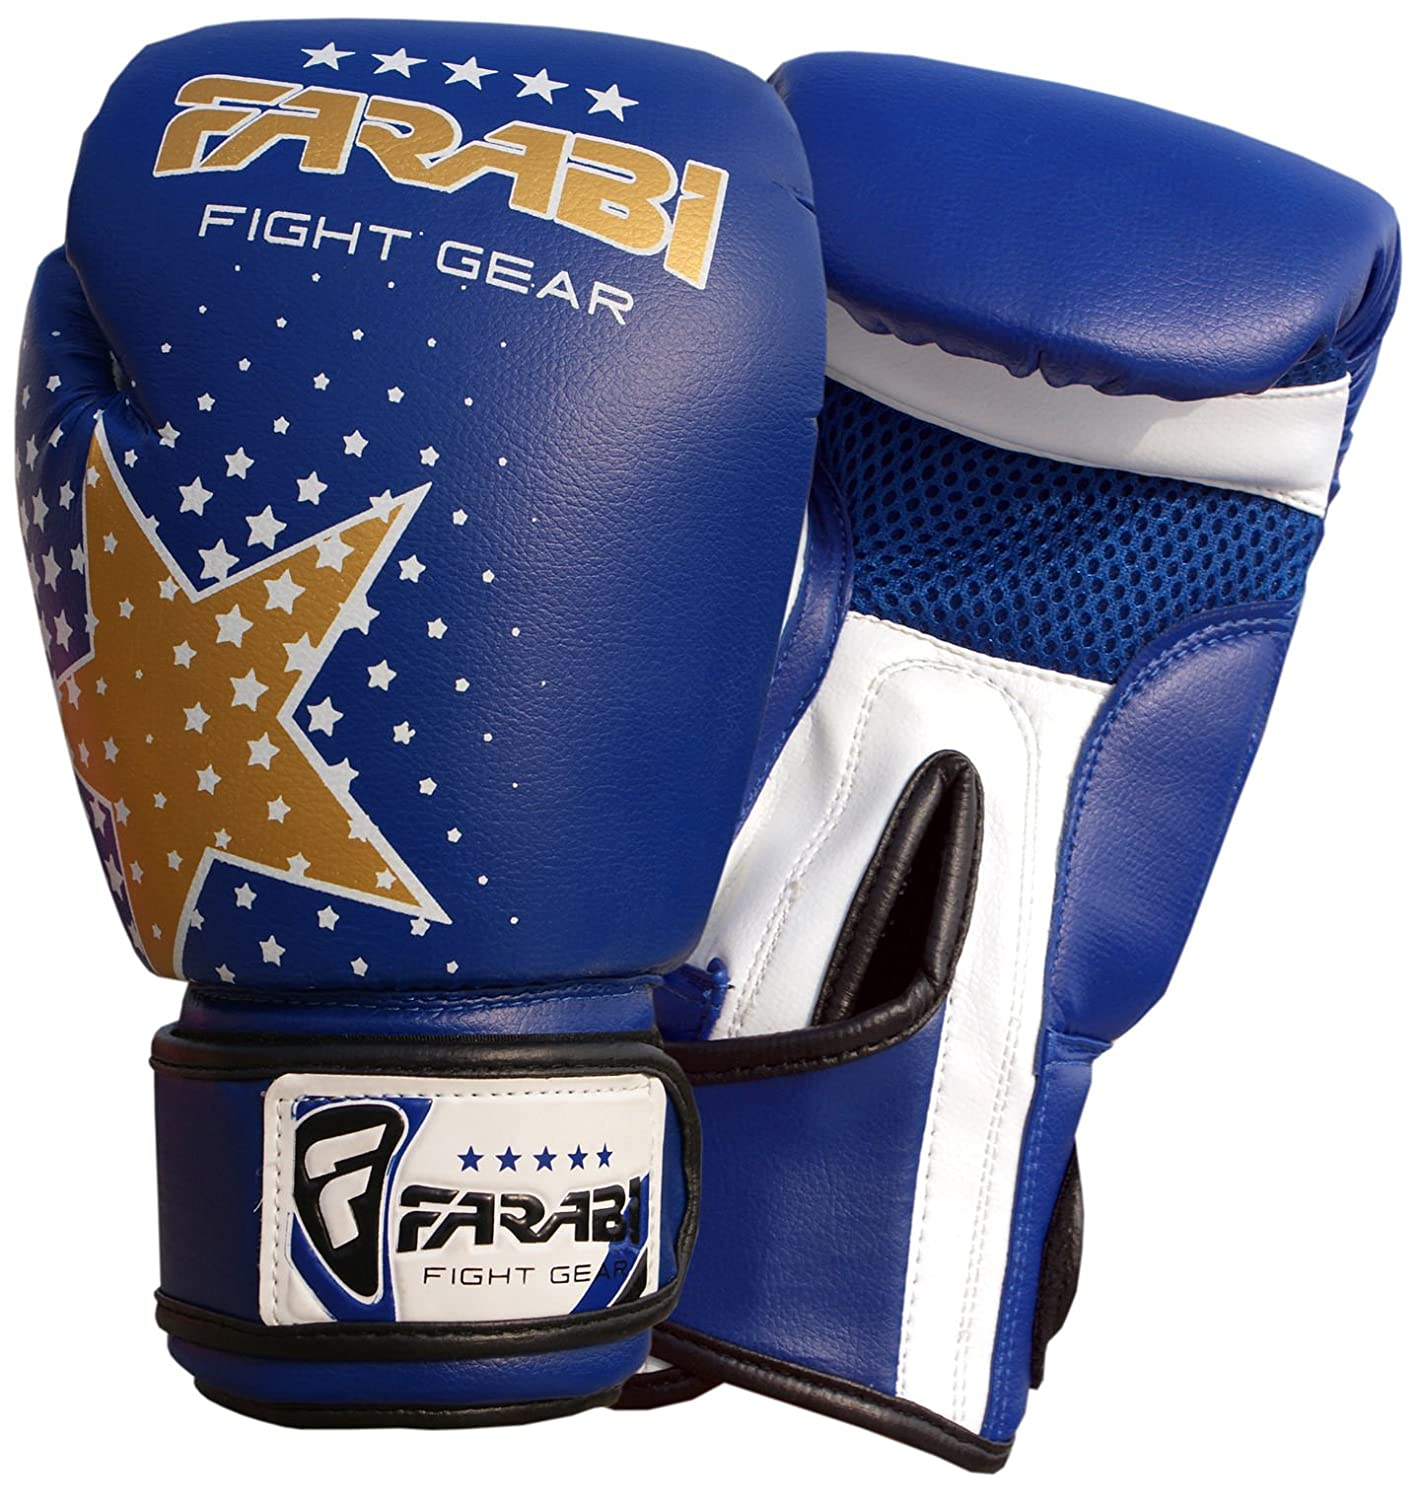 Farabi Beast Fighter Boxing Gloves Synthetic Leather Boxing Gloves